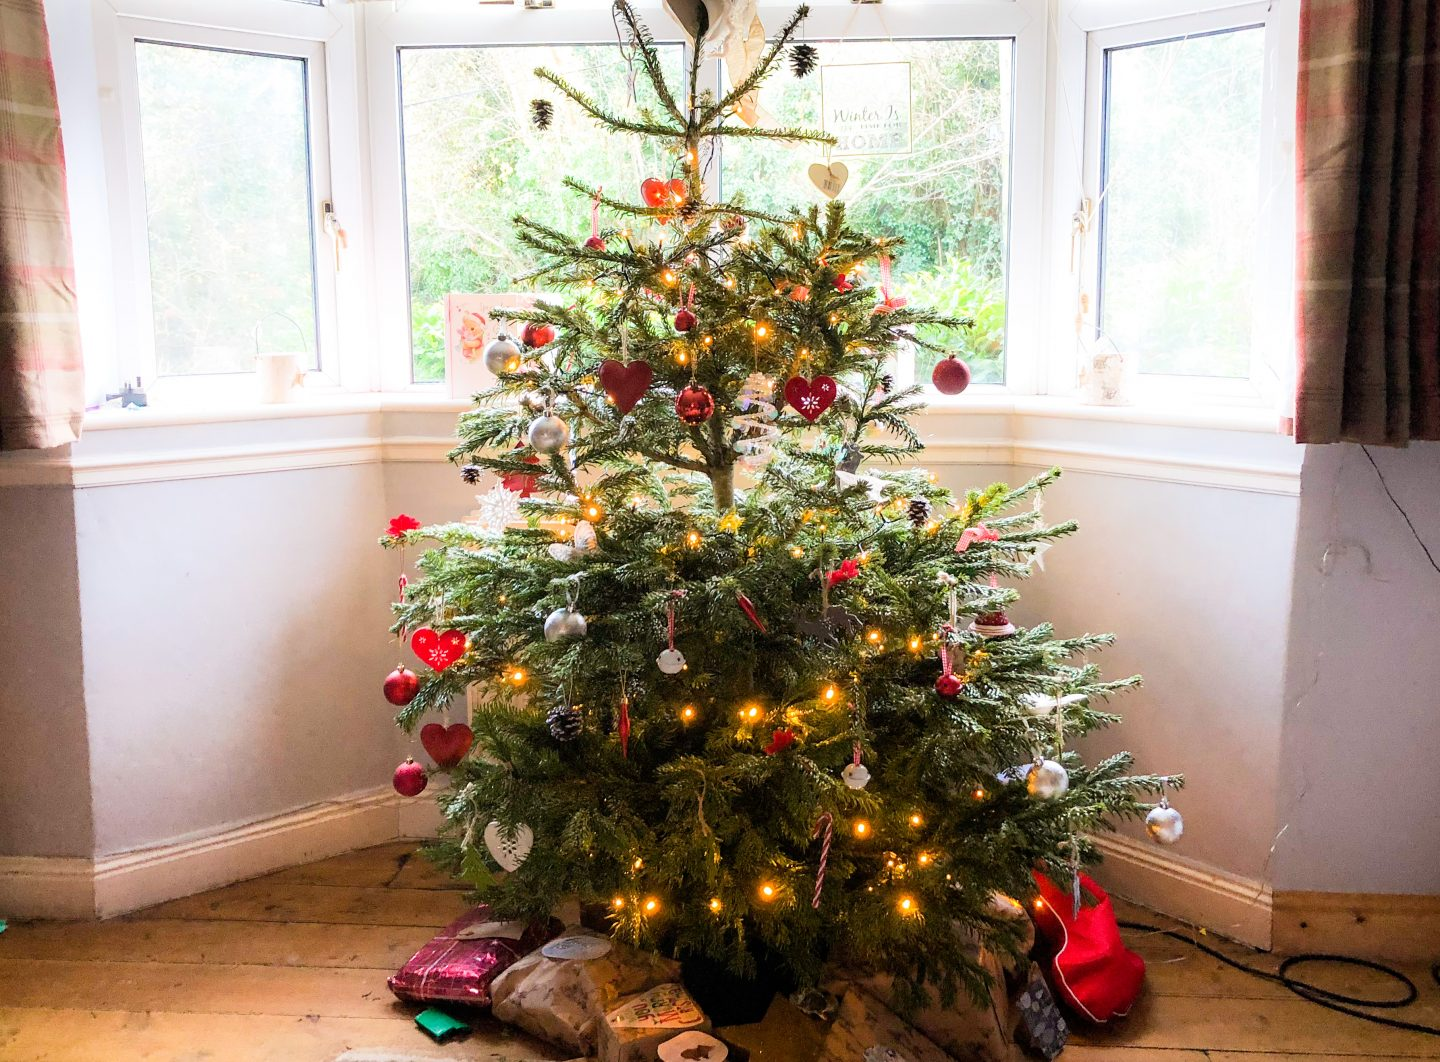 I've been pondering over the difference of going real and not having an artificial Christmas tree. There are benefits to both....